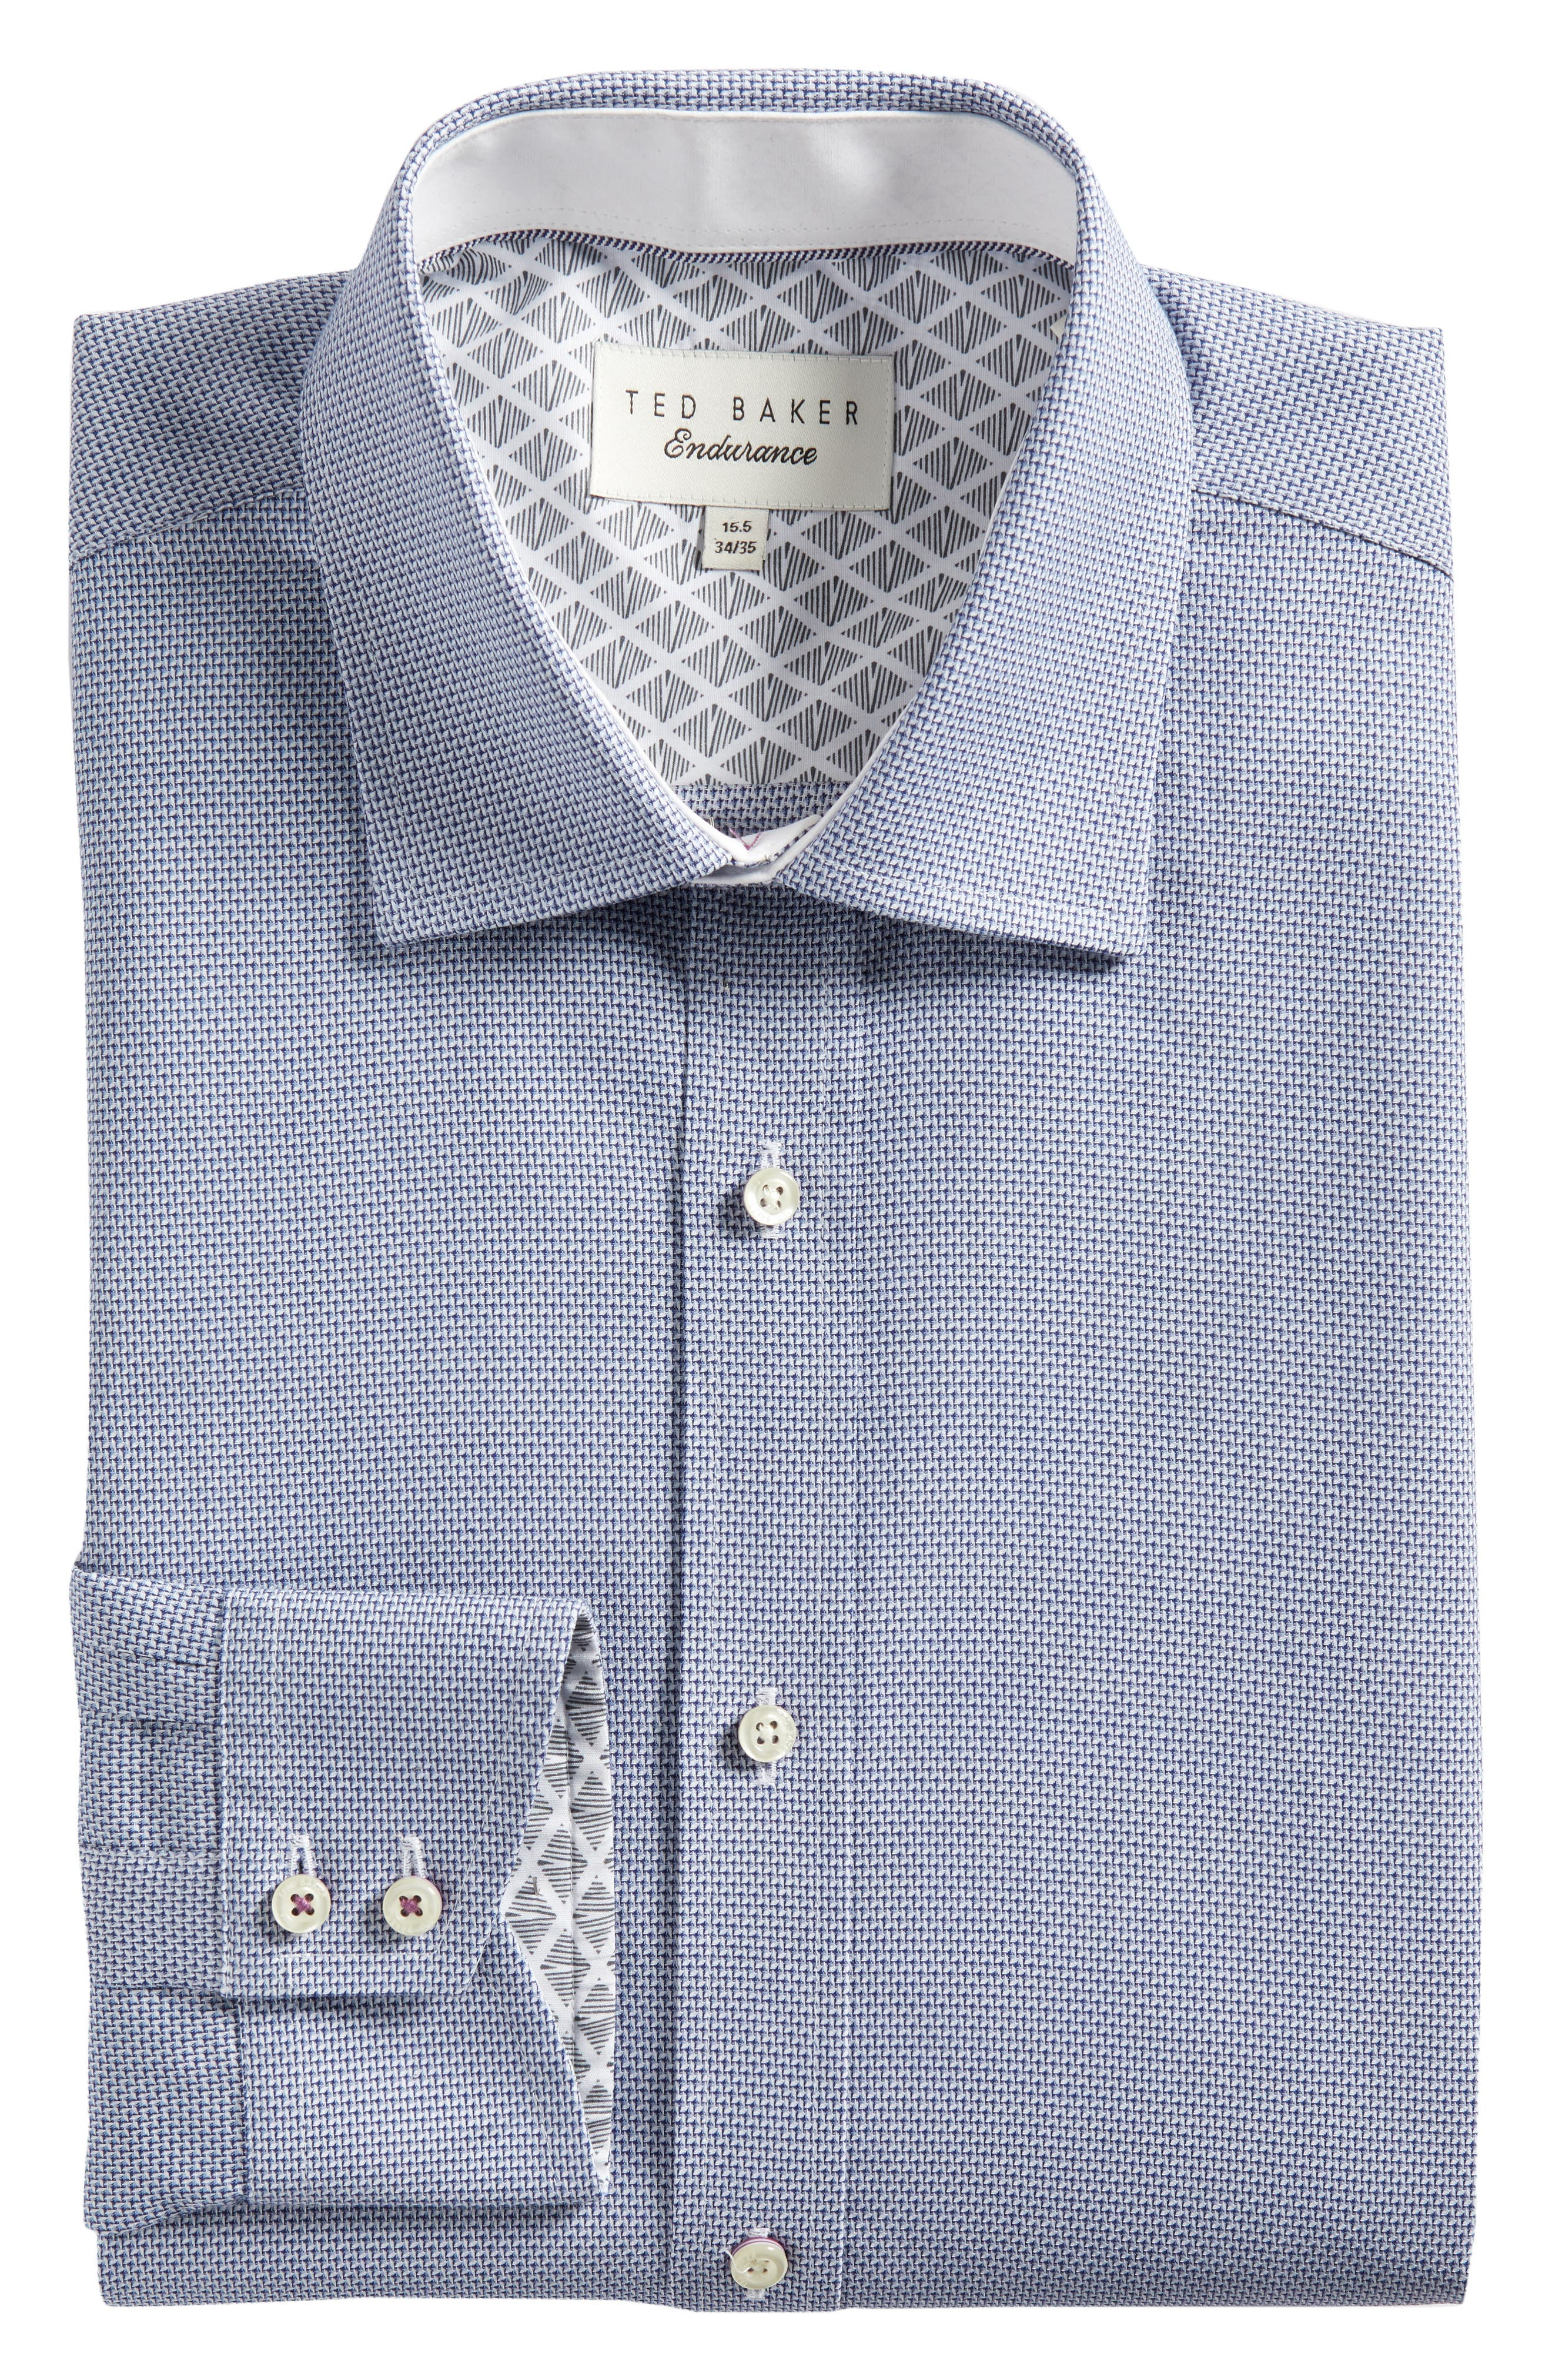 Murgese Trim Fit Geometric Dress Shirt,                             Alternate thumbnail 5, color,                             030